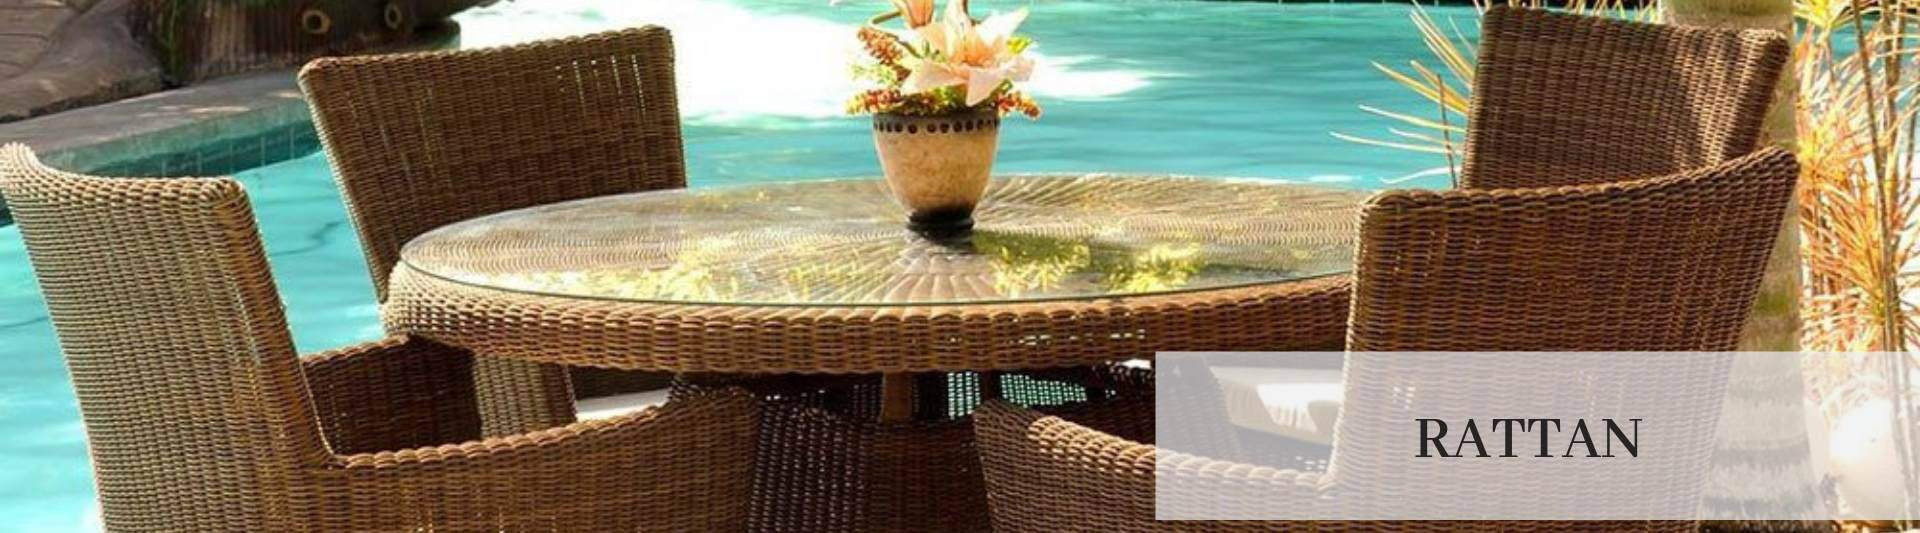 Peachy Rattan Garden Furniture Rattan Garden Furniture Ireland Download Free Architecture Designs Remcamadebymaigaardcom